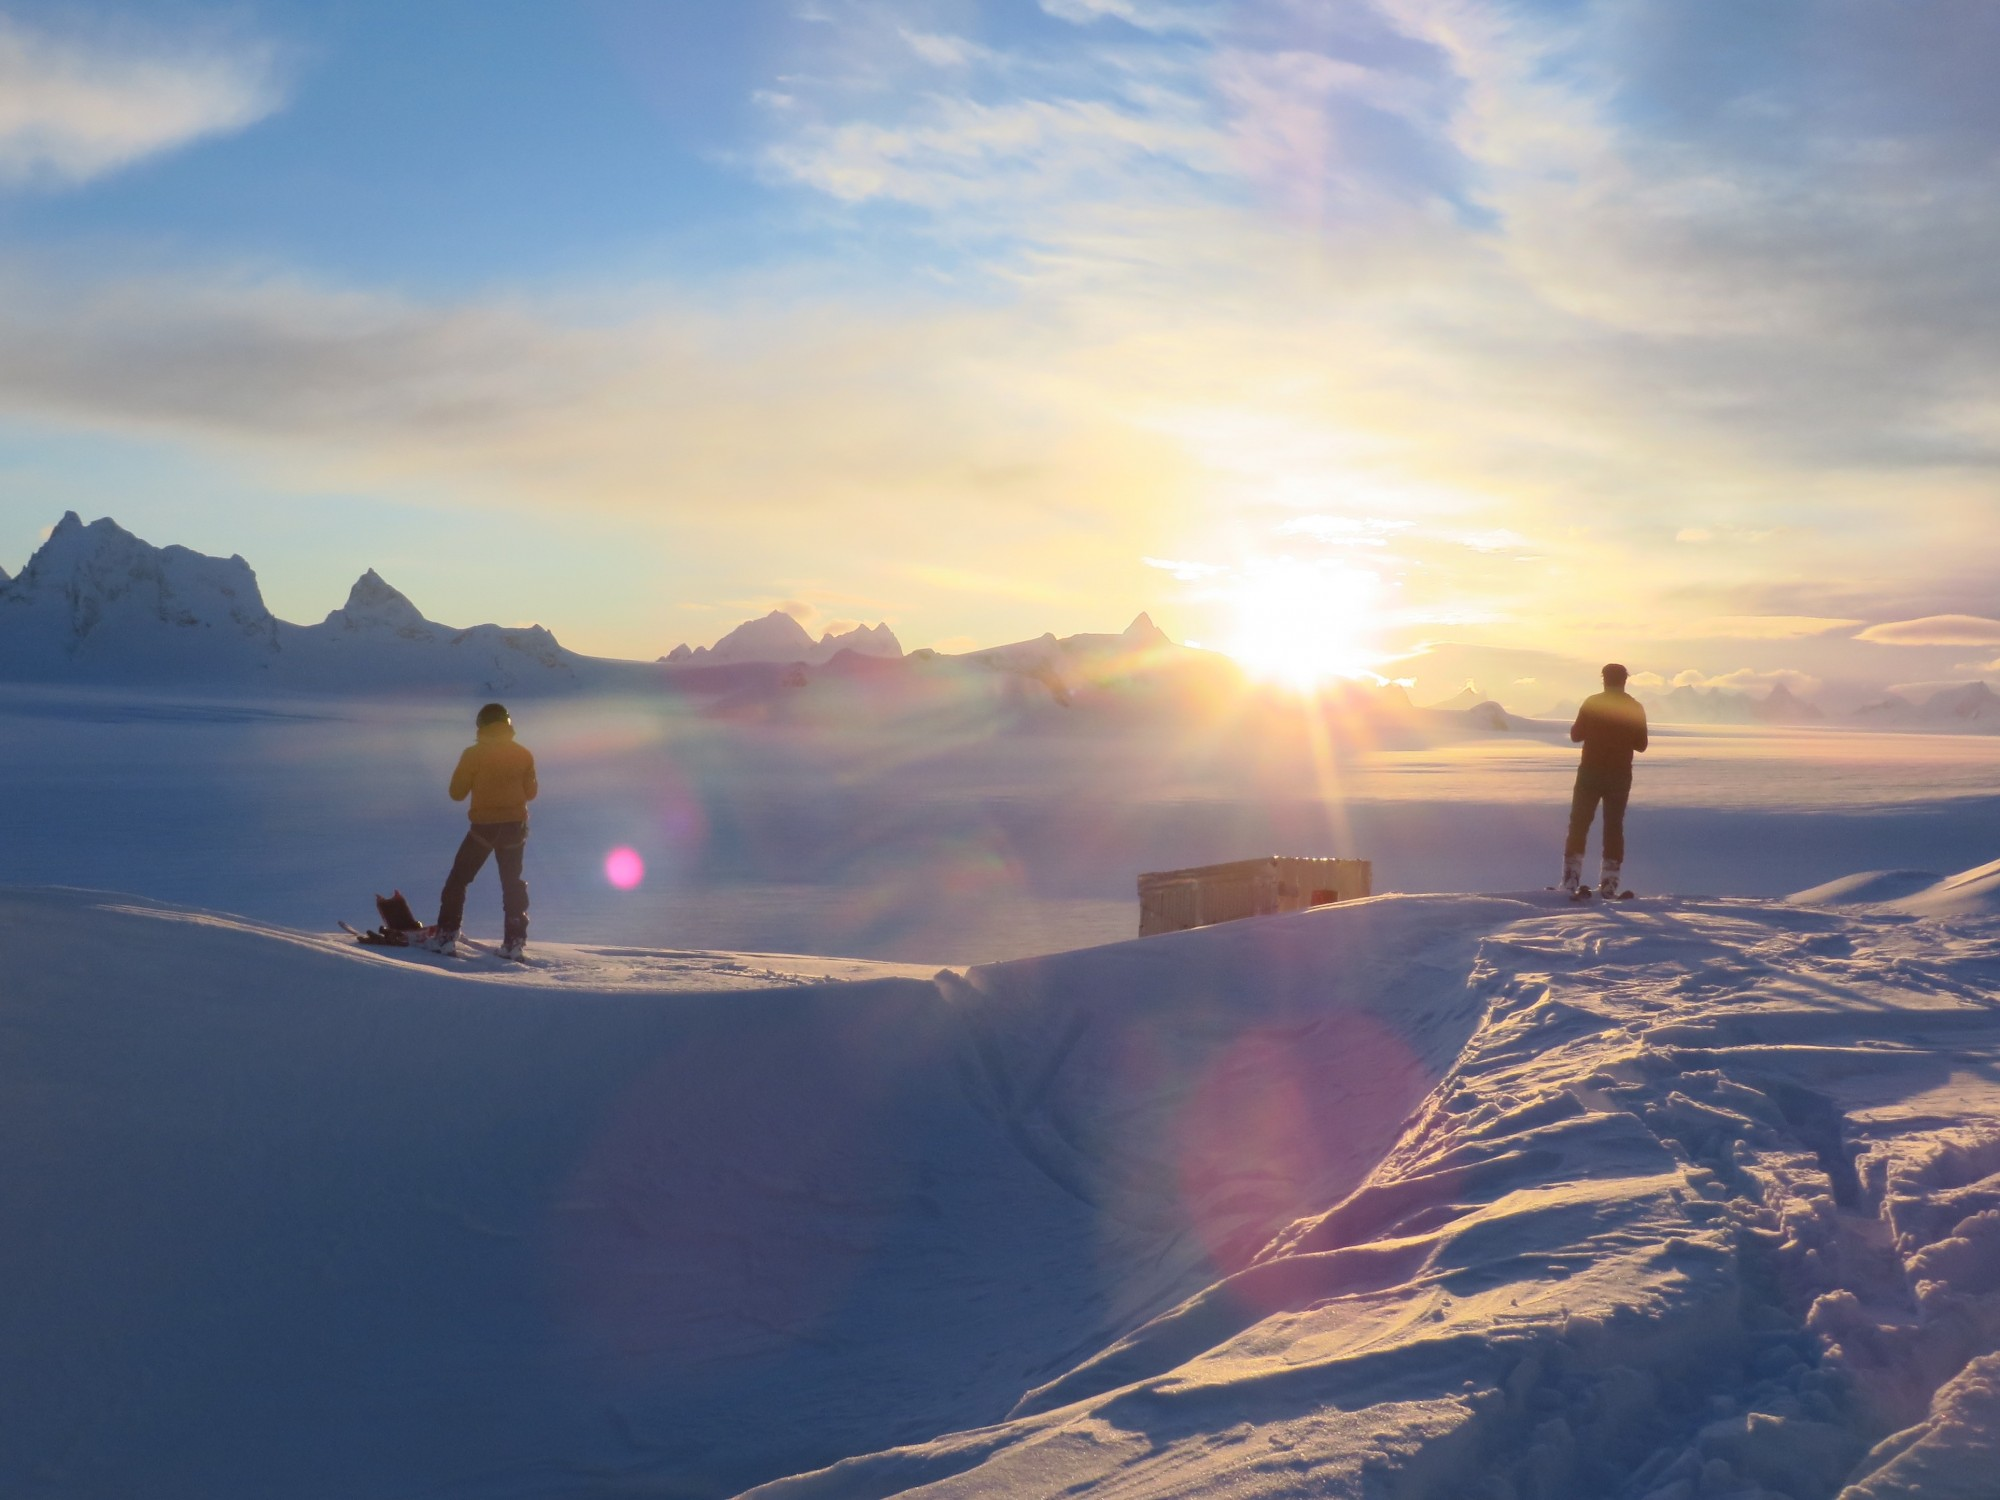 Researchers travel by ski to remote locations on the Juneau Icefield to collect snow and melt measurements in April 2015.